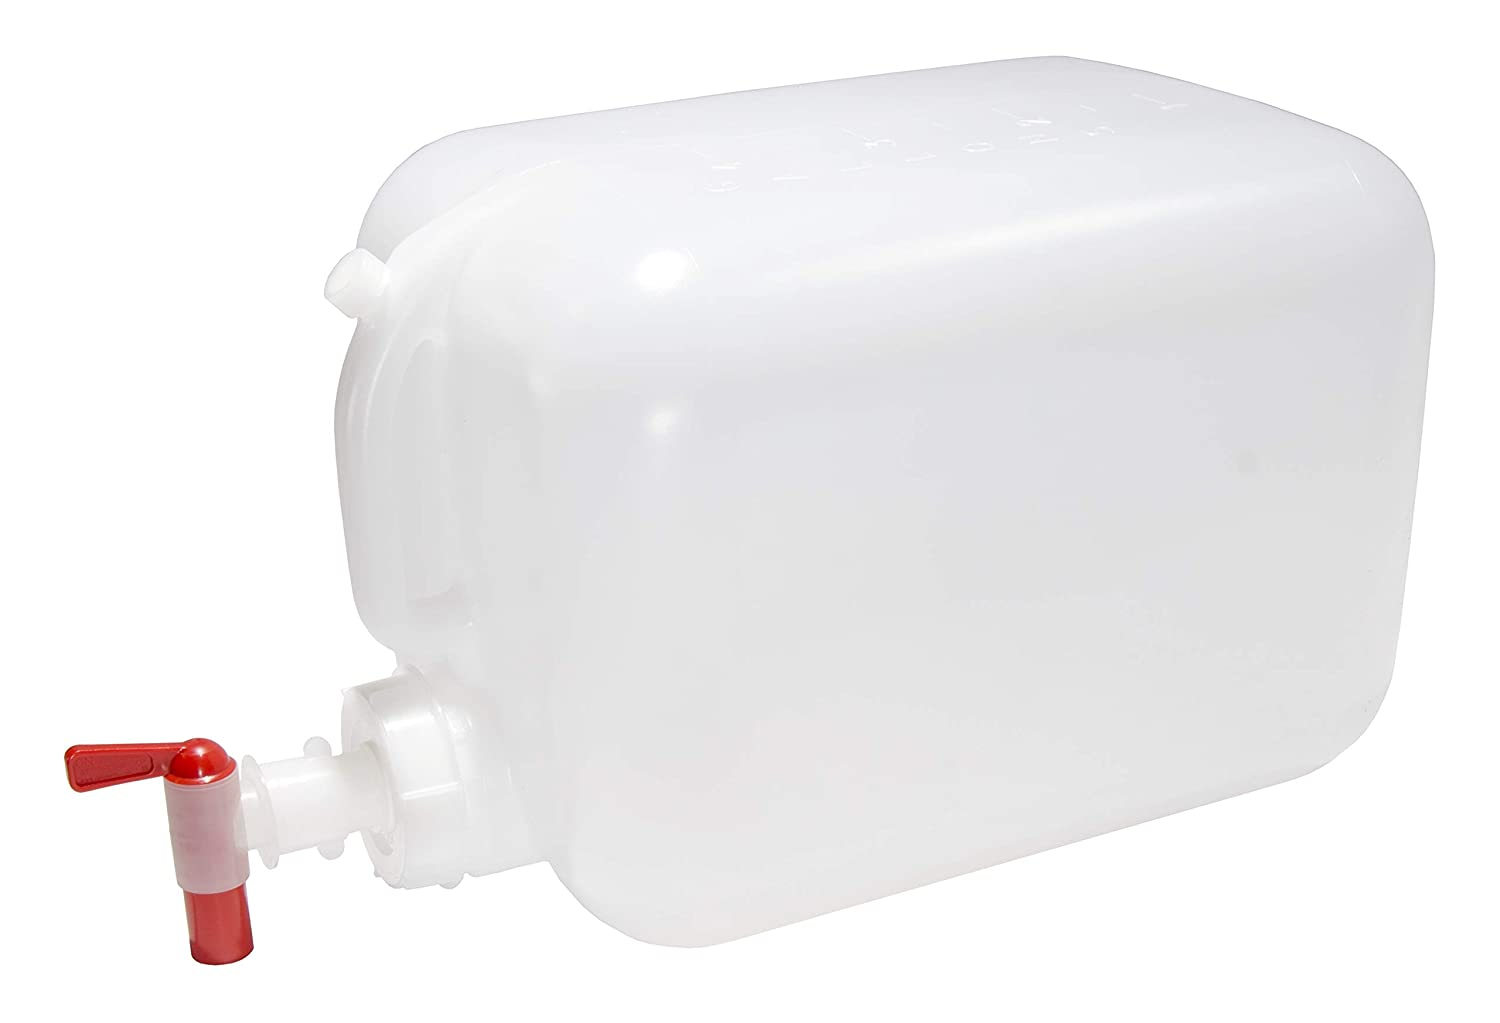 North Mountain Supply 5 Gallon Vented Plastic Hedpak/Carboy - With Cap & Faucet